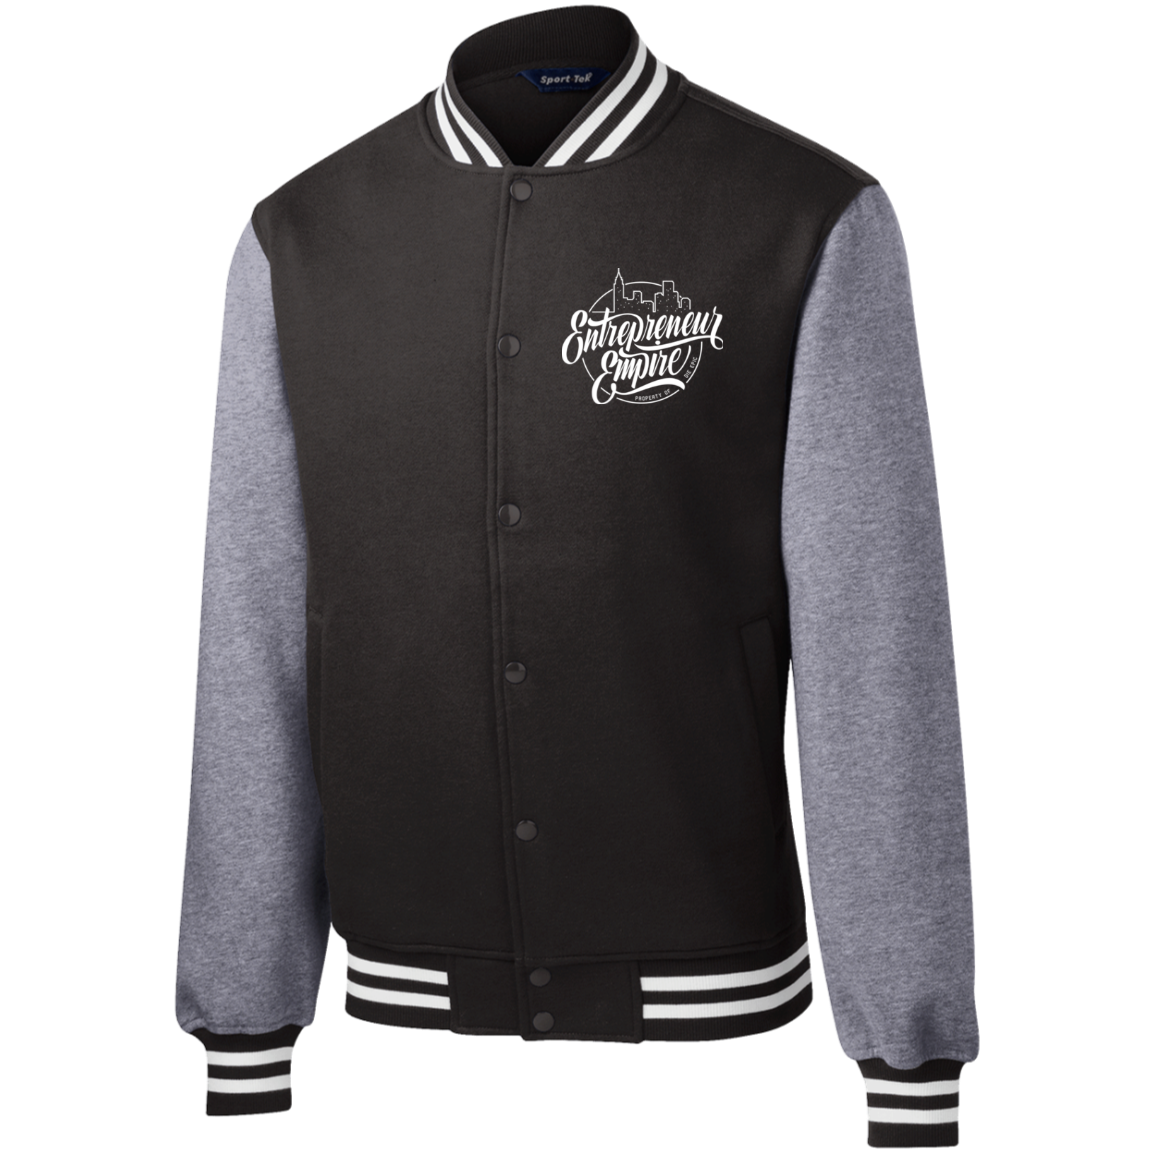 Entrepreneur Empire Fleece Letterman Jacket | Entrepreneur Apparel & Gear | Entrepreneur Empire